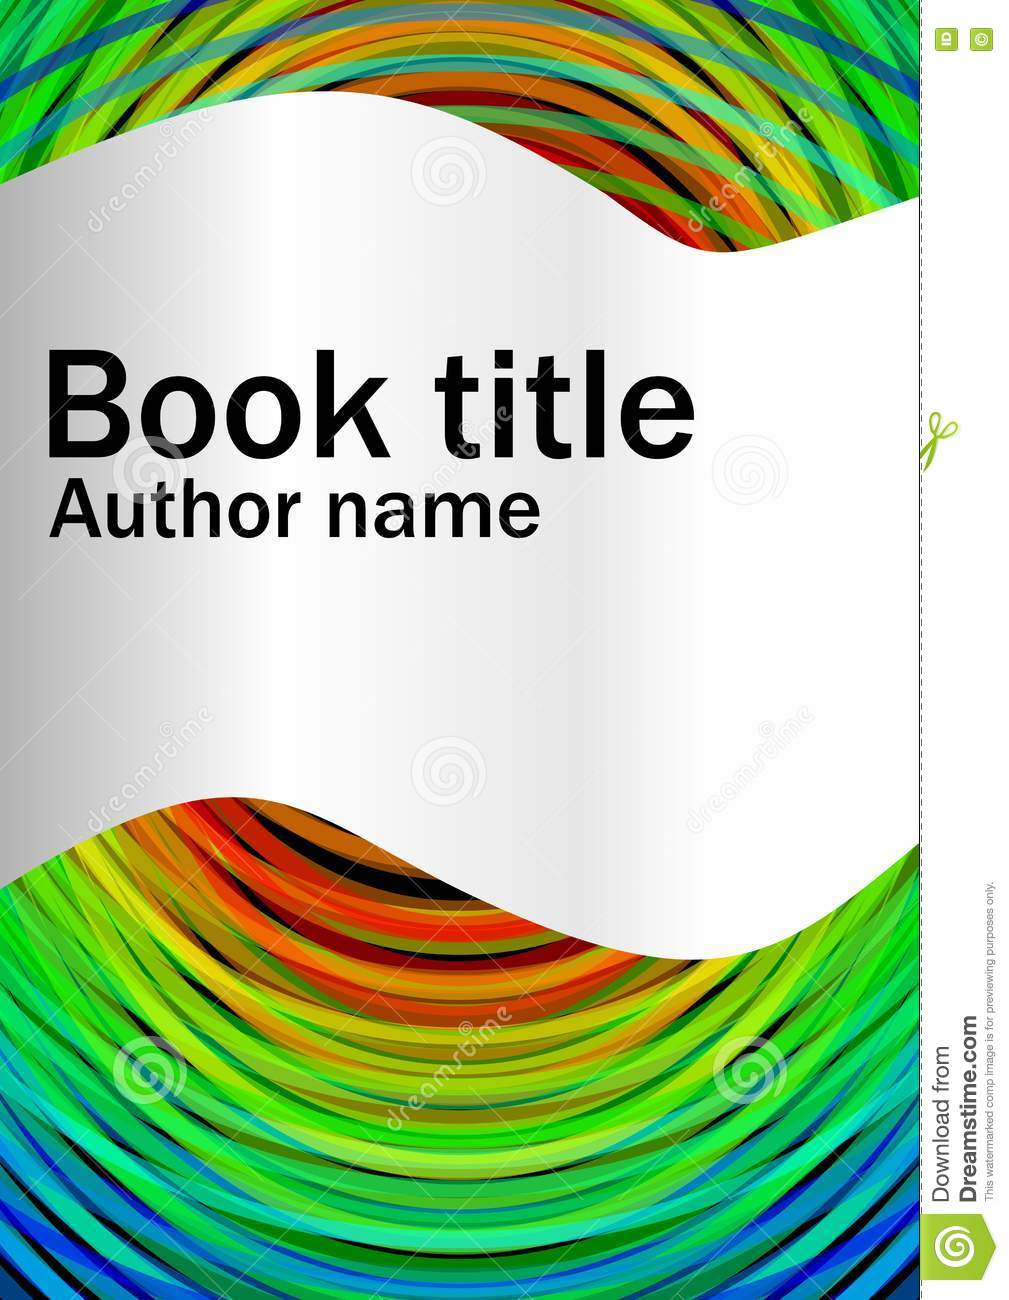 Paper Book Cover Template : Book cover template with abstract rainbow circles and